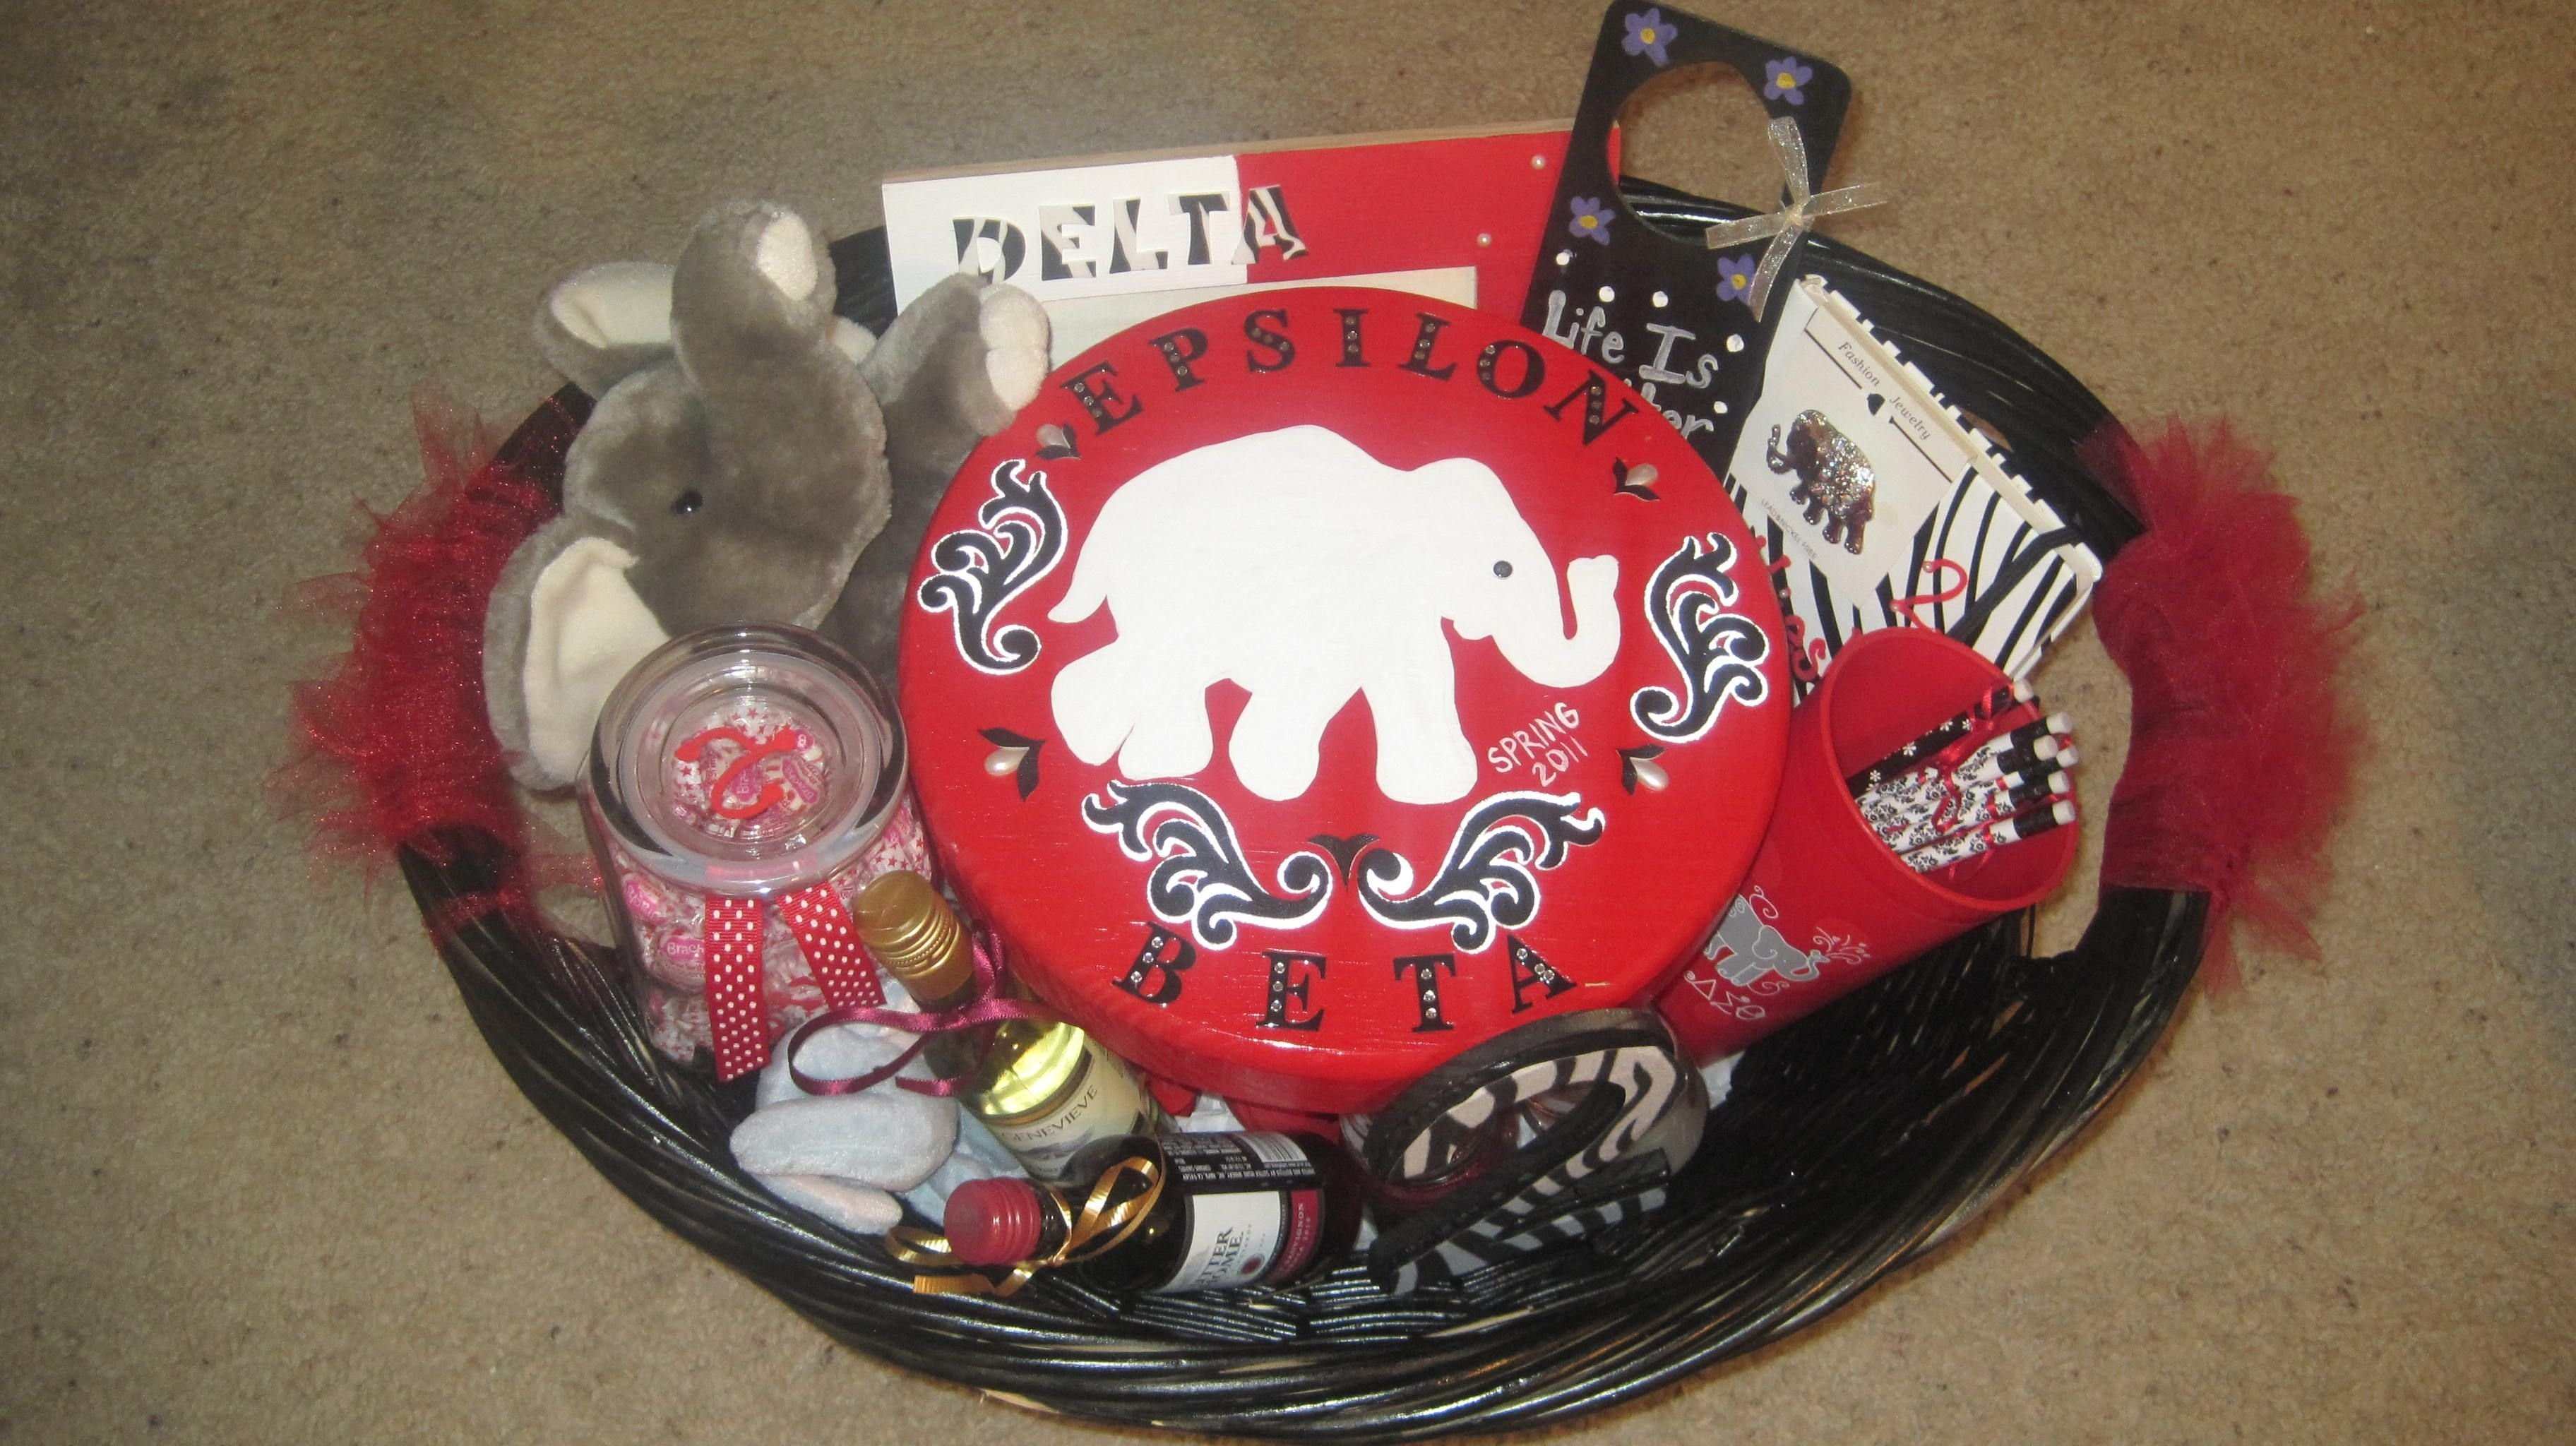 10 Best Delta Sigma Theta Gift Ideas oo oop a delta sigma theta sorority gift basket can be used as 2020